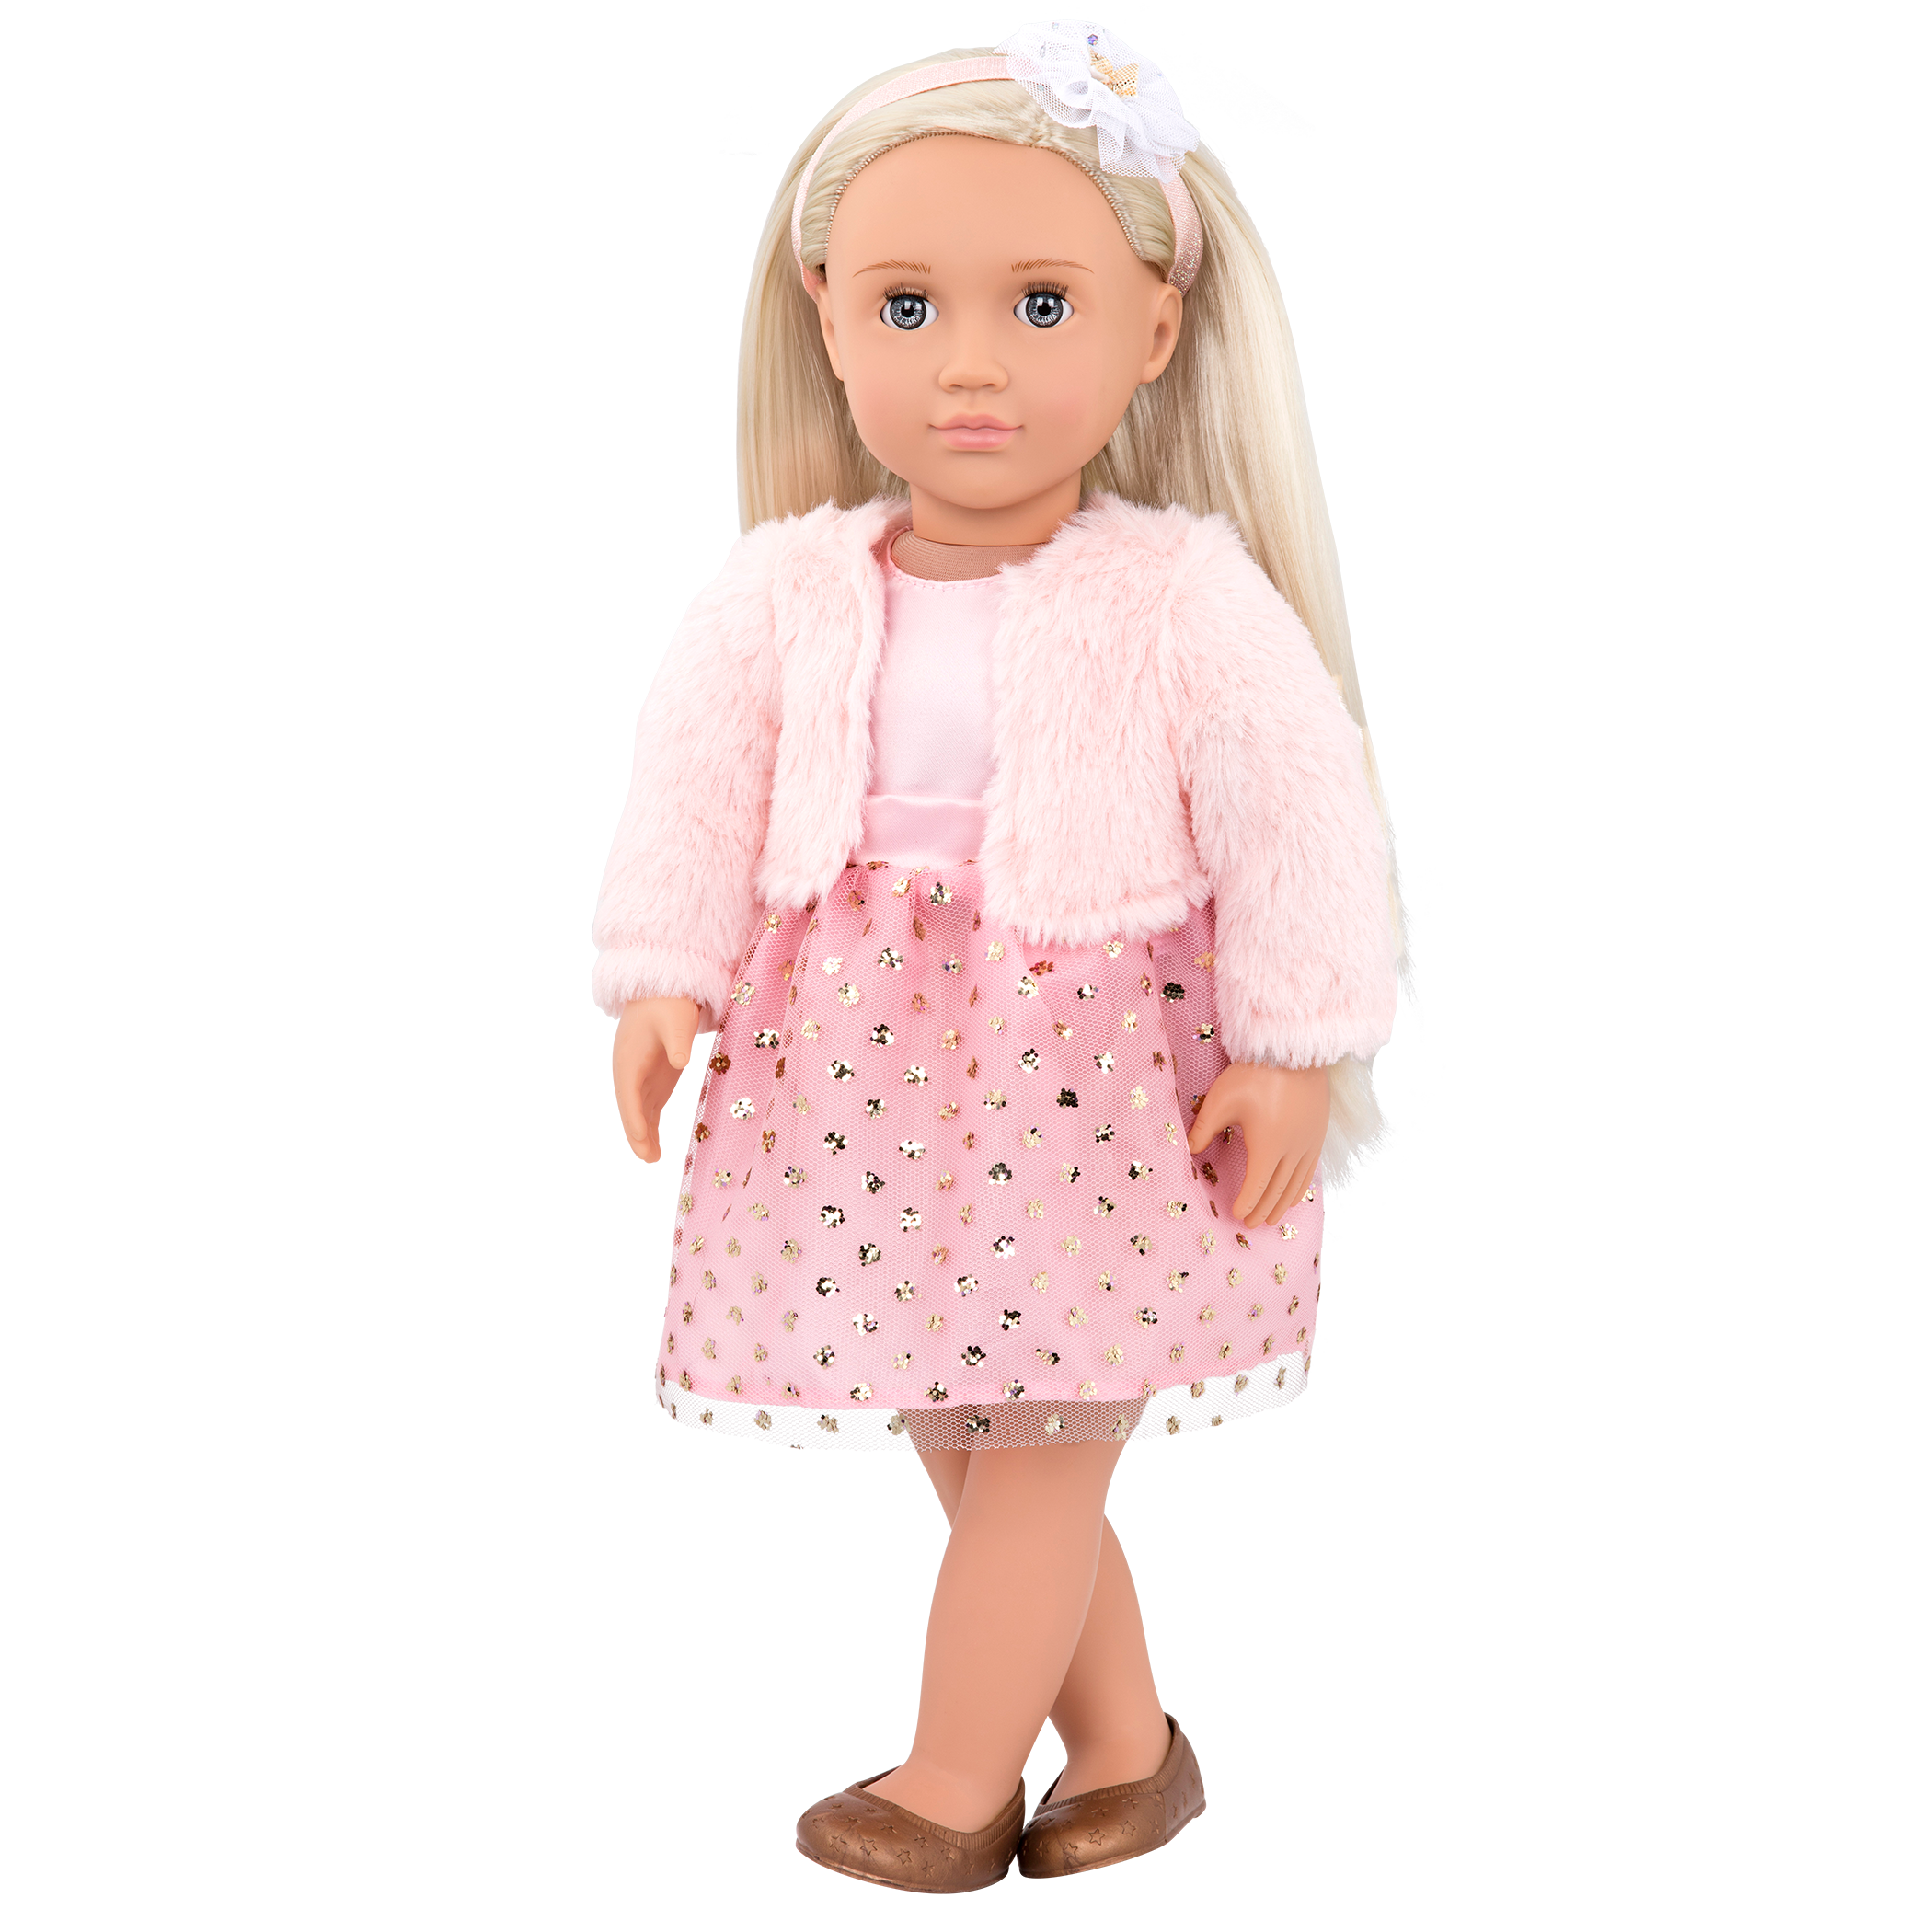 Millie Regular 18-inch Doll with legs crossed